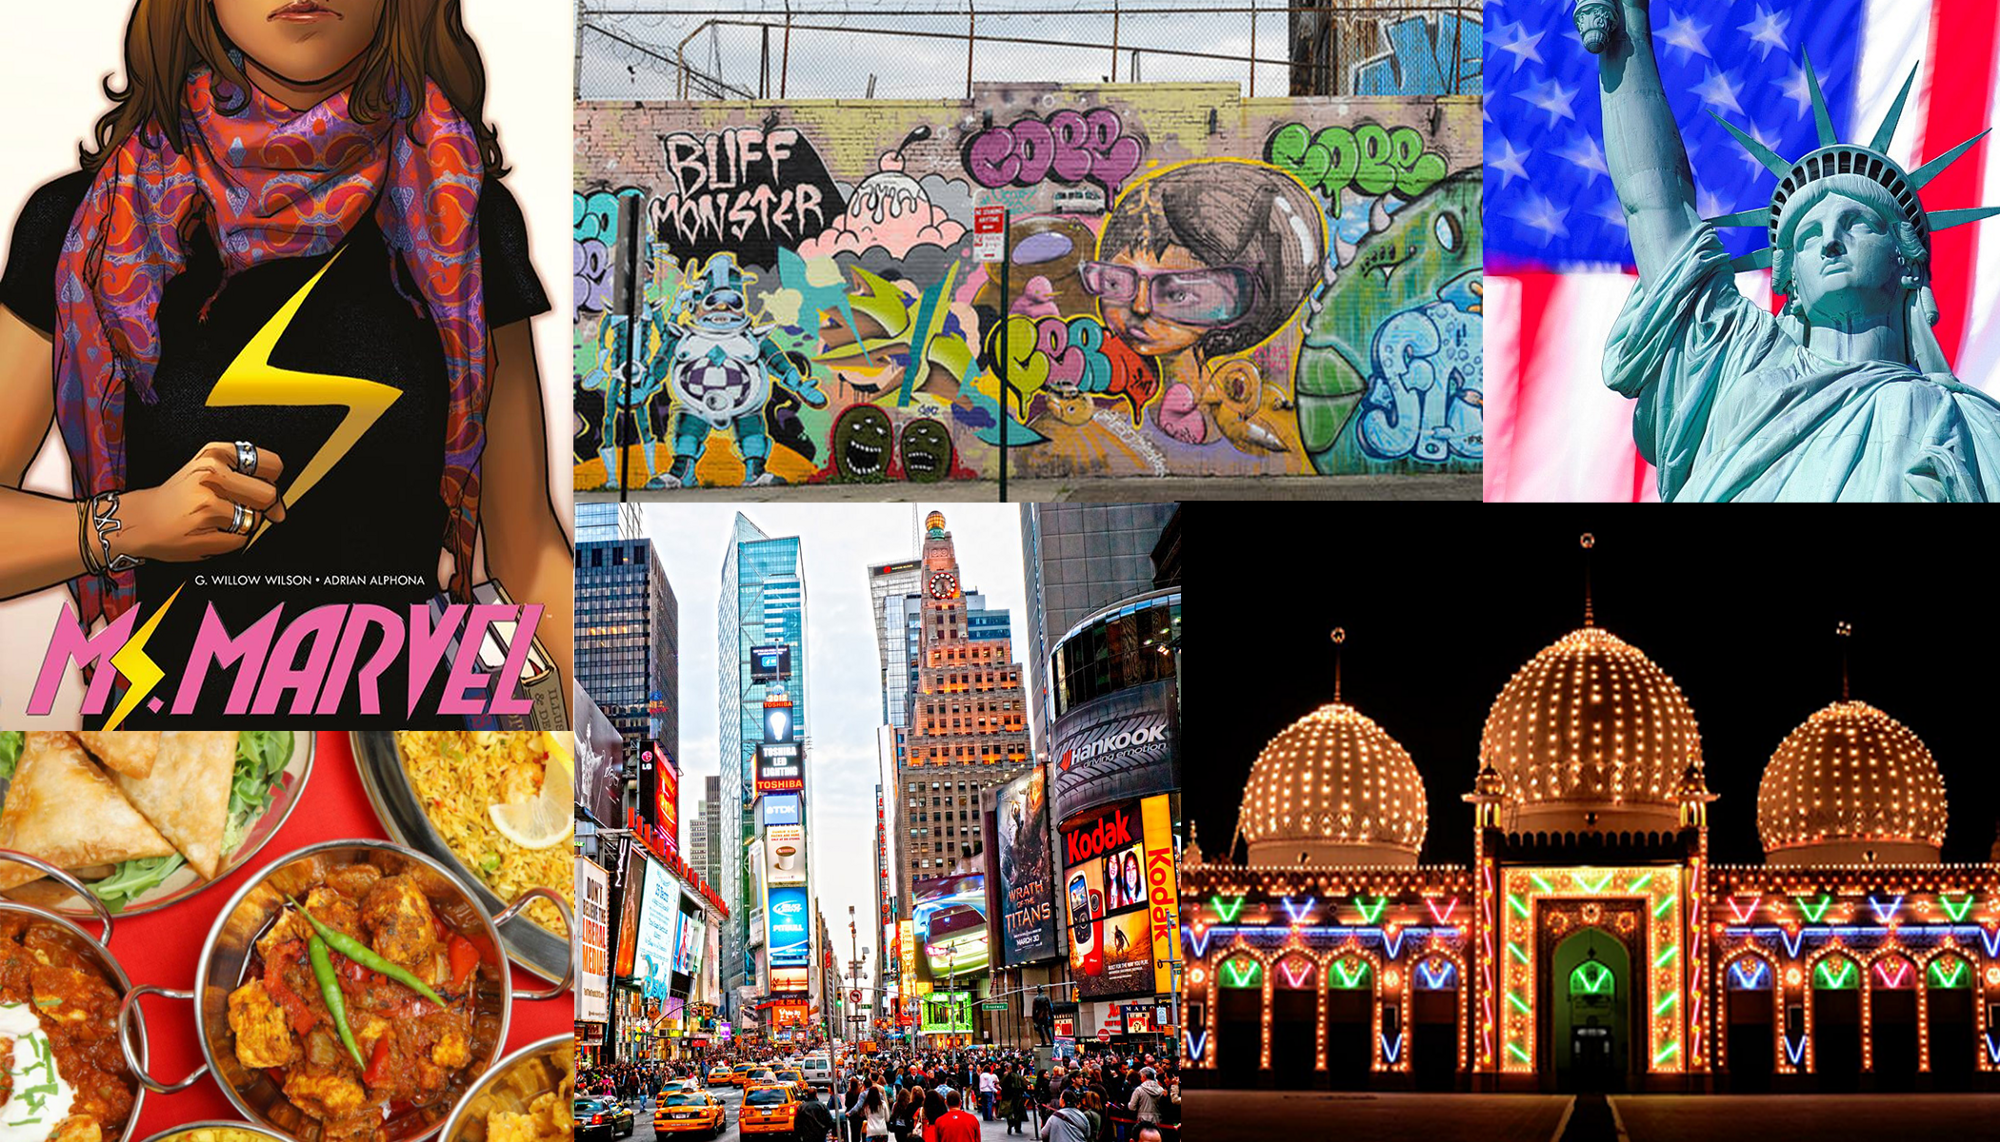 Collage of Ms. Marvel comic, Bronx Hall of Fame graffiti Statue of Liberty Pakistani food, Times Square and a Mosque